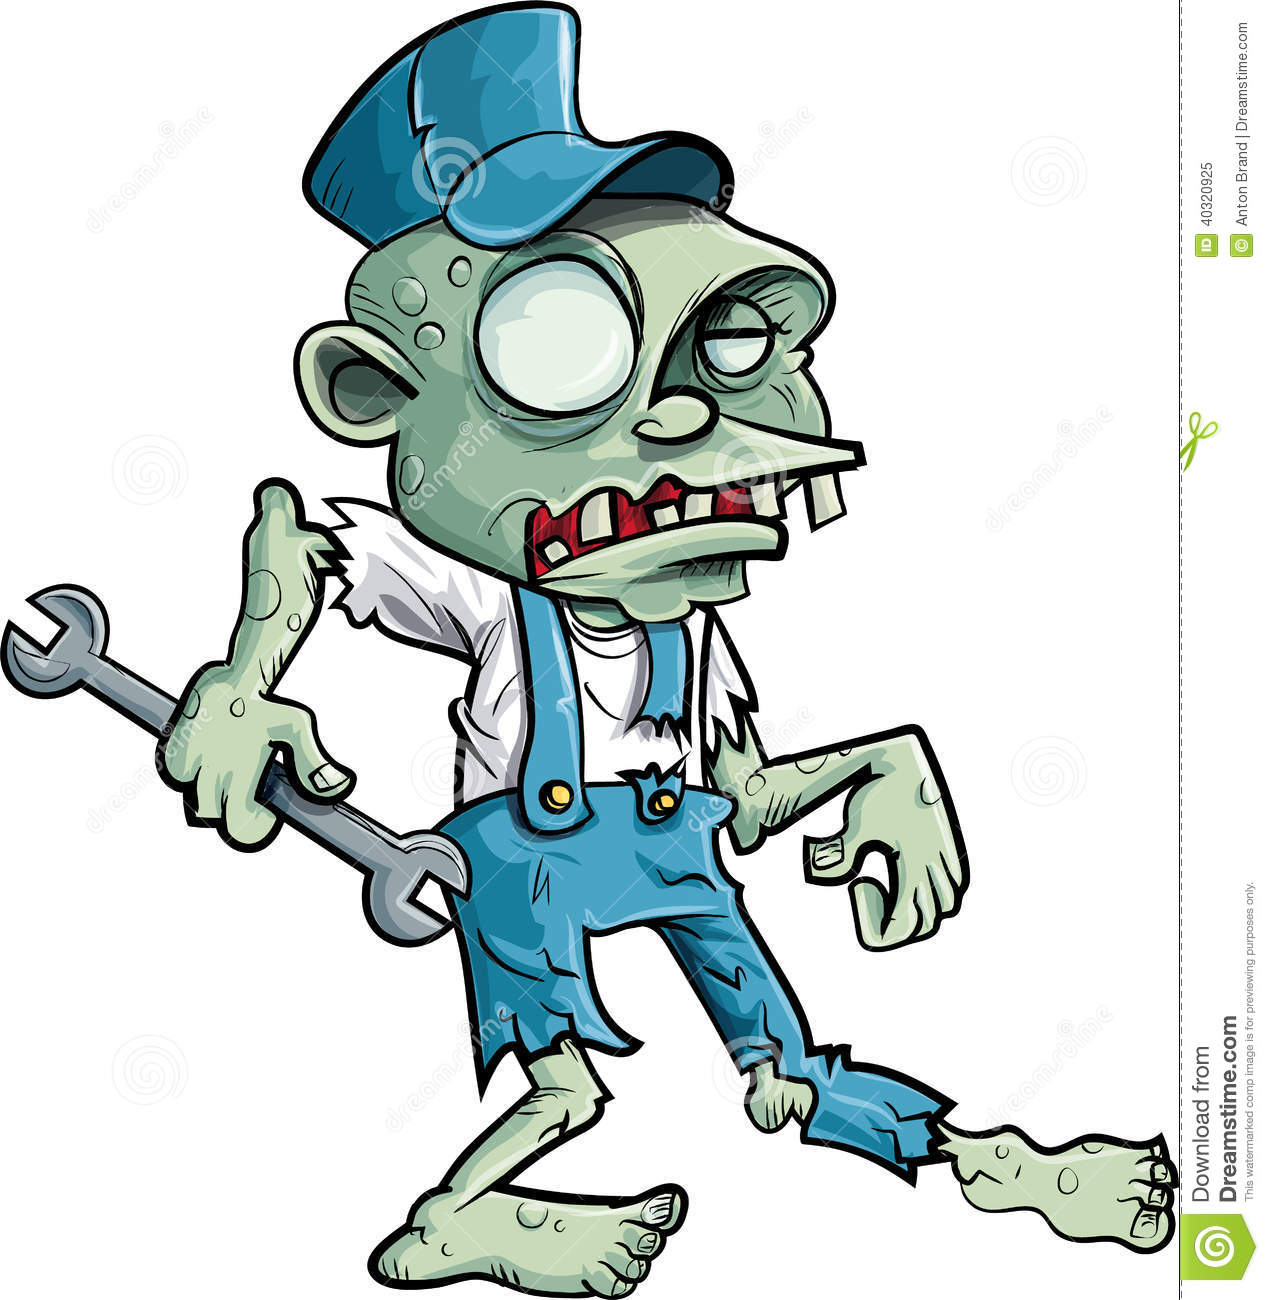 cartoon-zombie-plumber-wrench-isolated-white-40320925.jpg